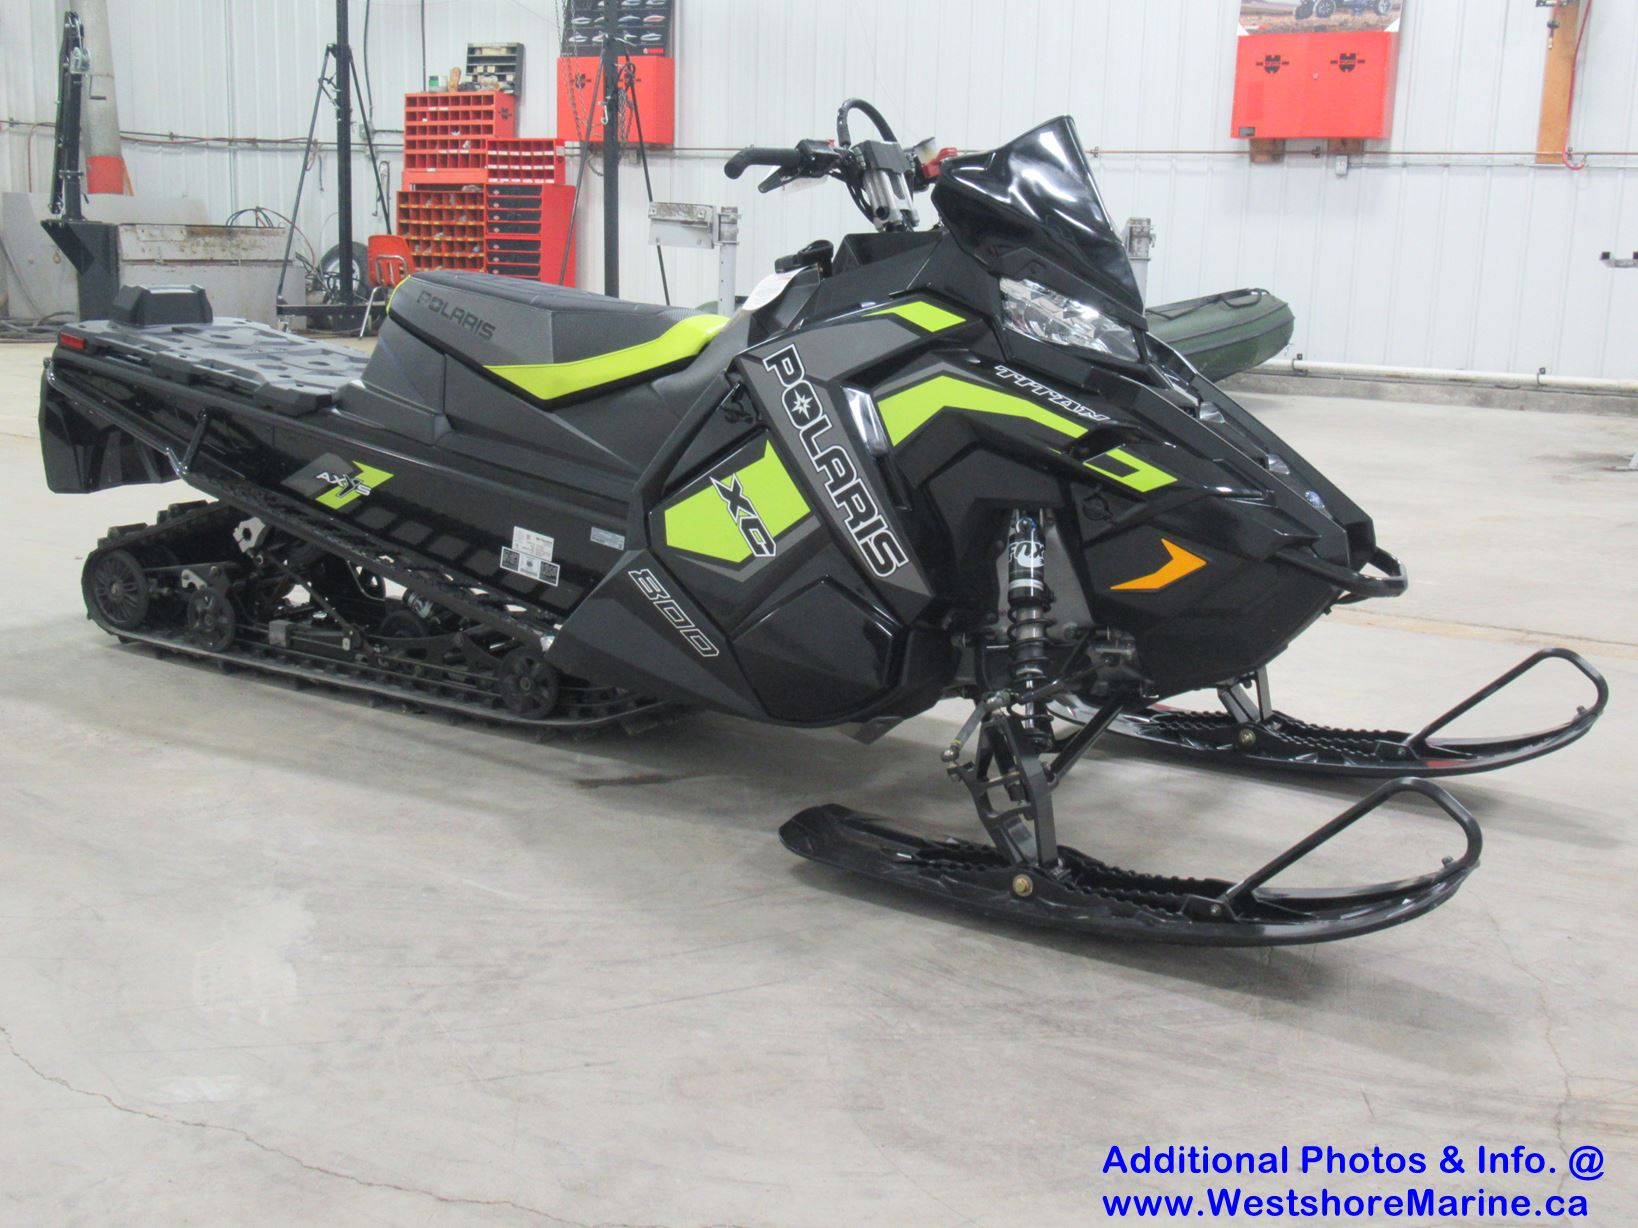 New 2019 Polaris 800 TITAN XC 155 / ELECTRIC START / PIDD GPS!